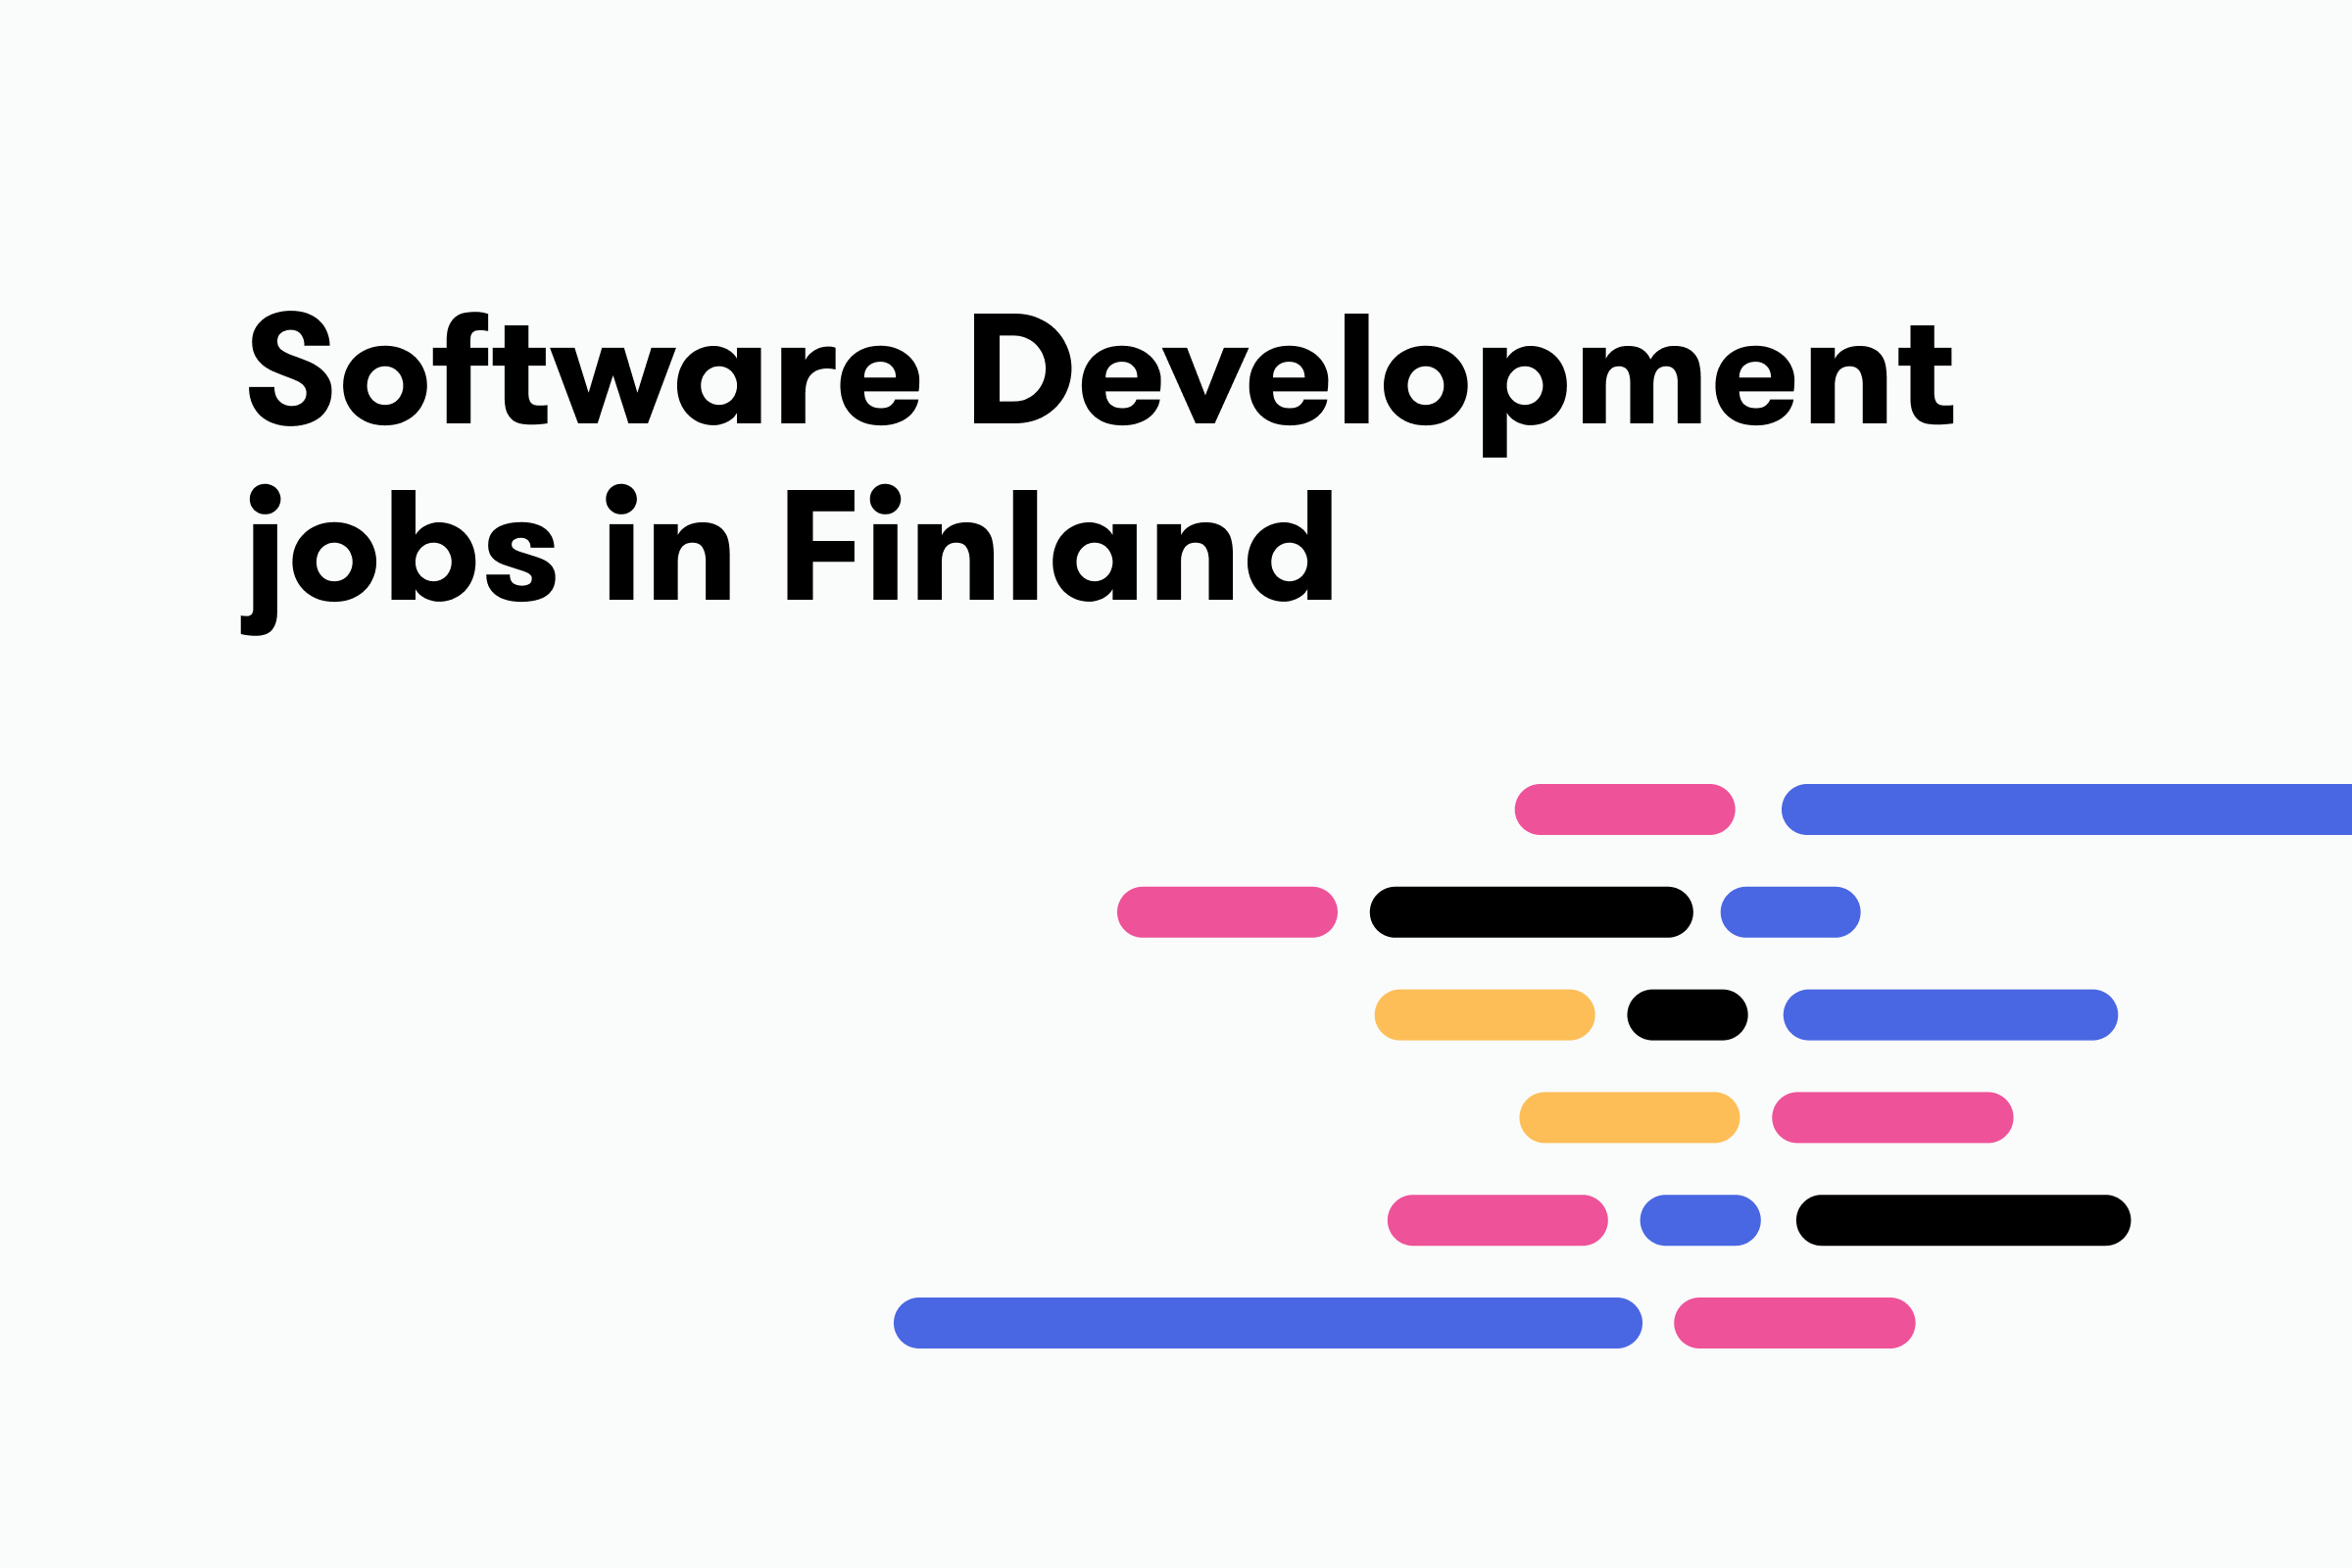 Software development jobs in Finland